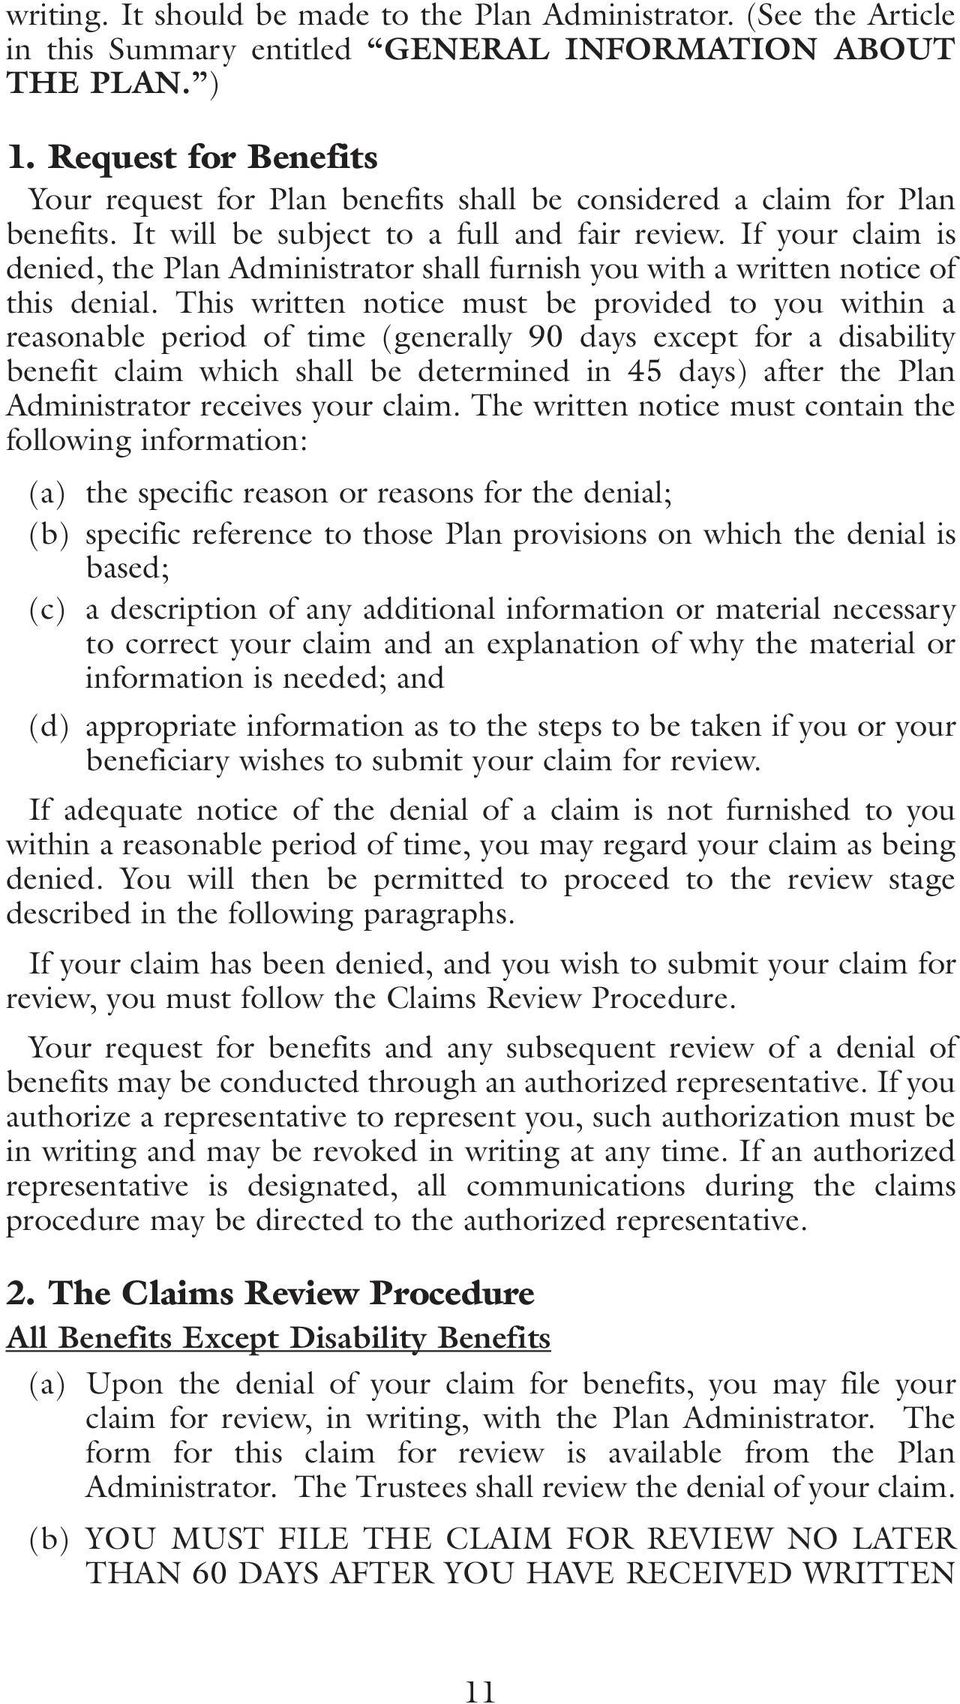 If your claim is denied, the Plan Administrator shall furnish you with a written notice of this denial.